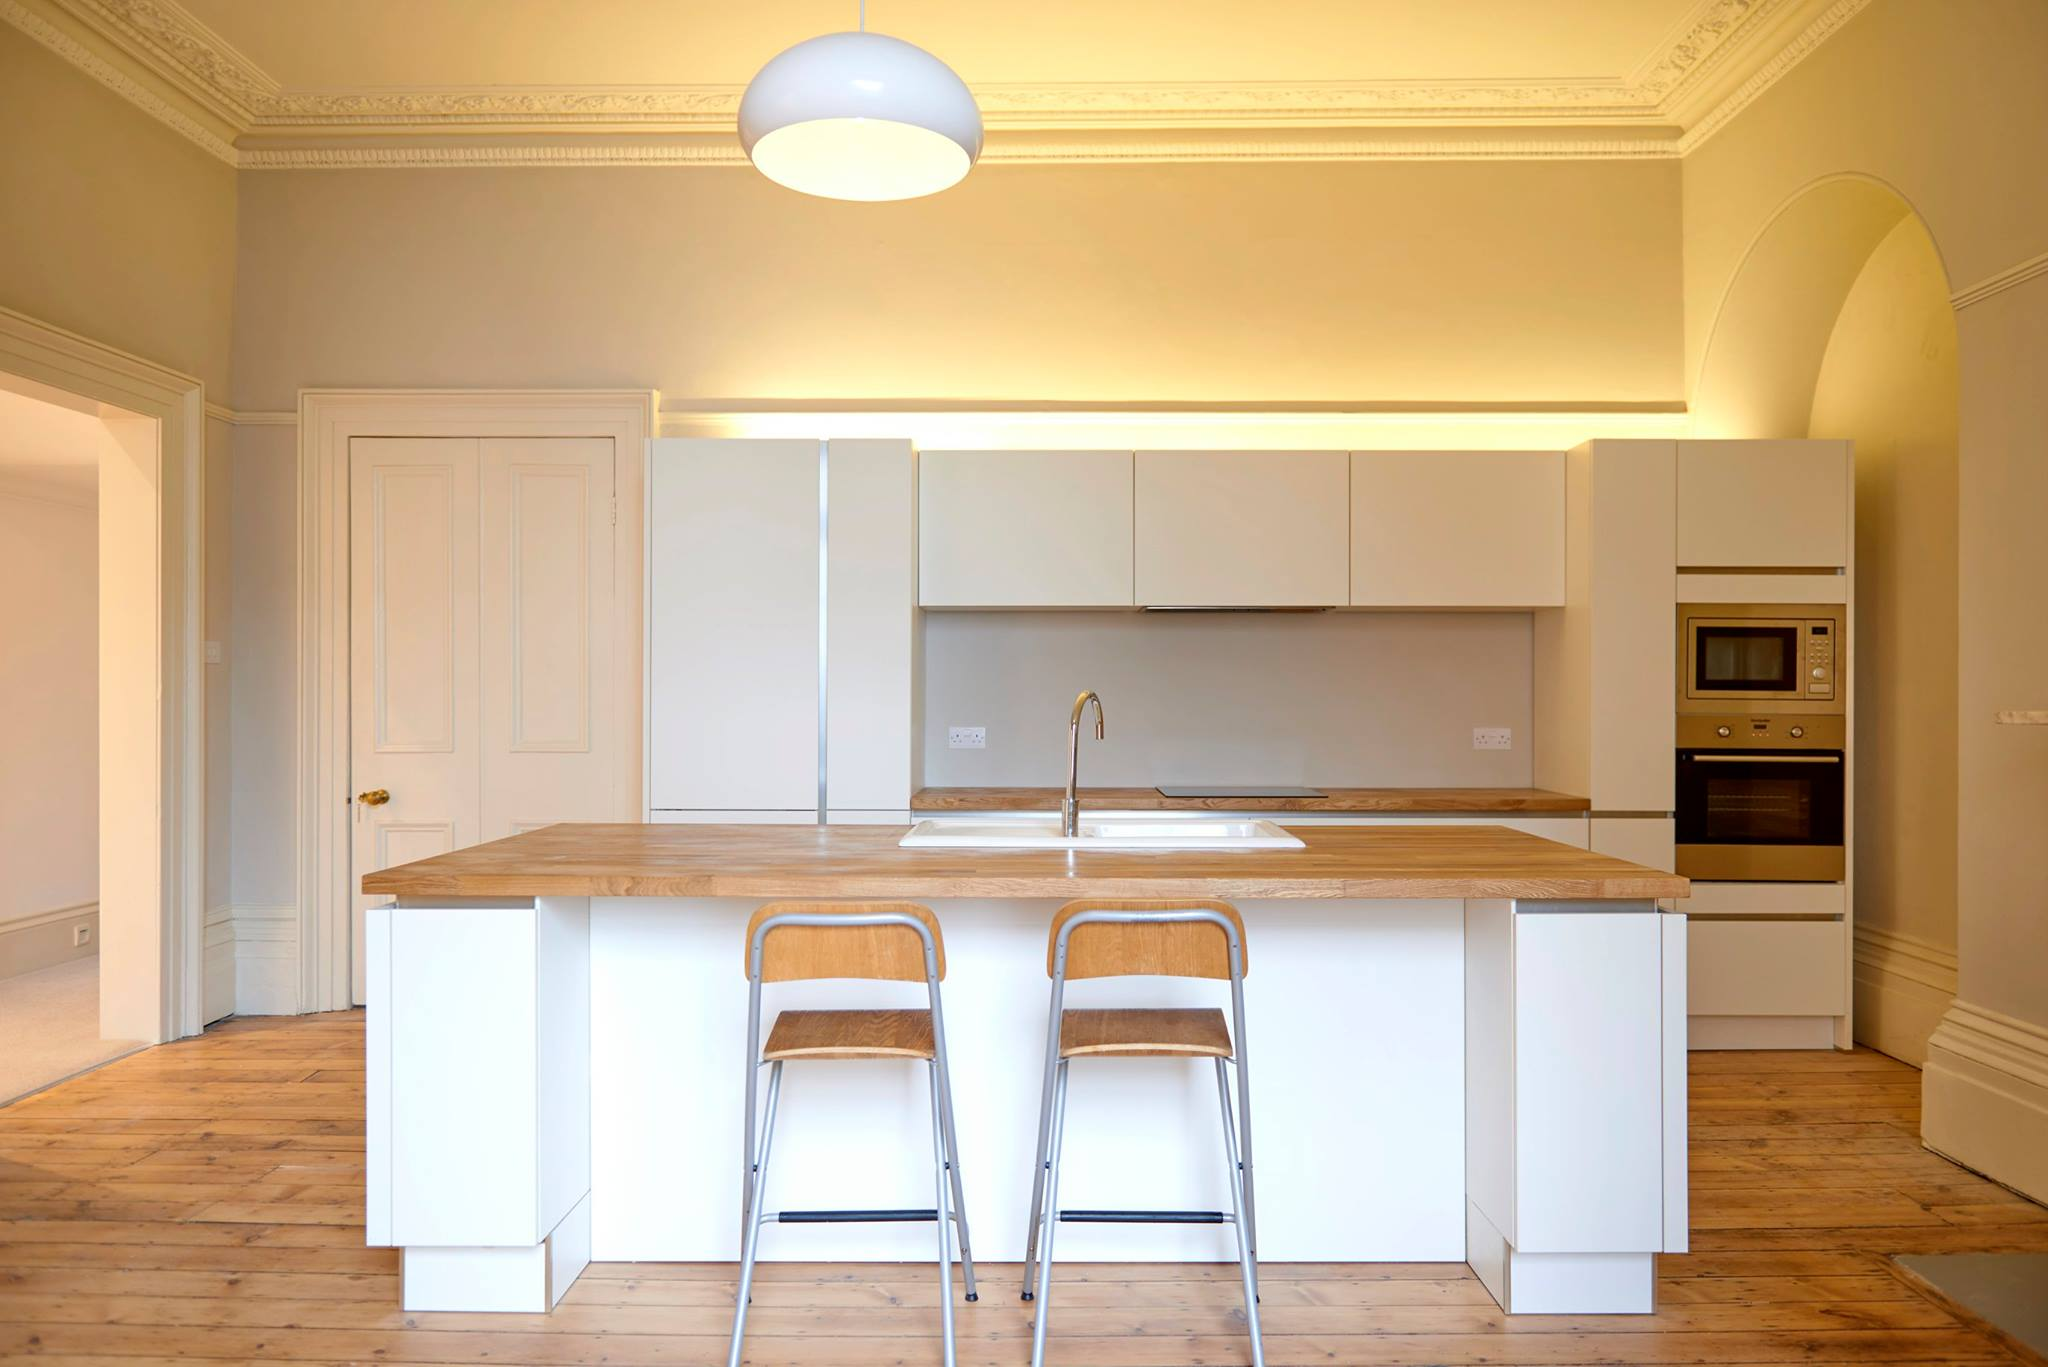 Kitchens Cirencester, Voga Kitchens - The Suffolks Project